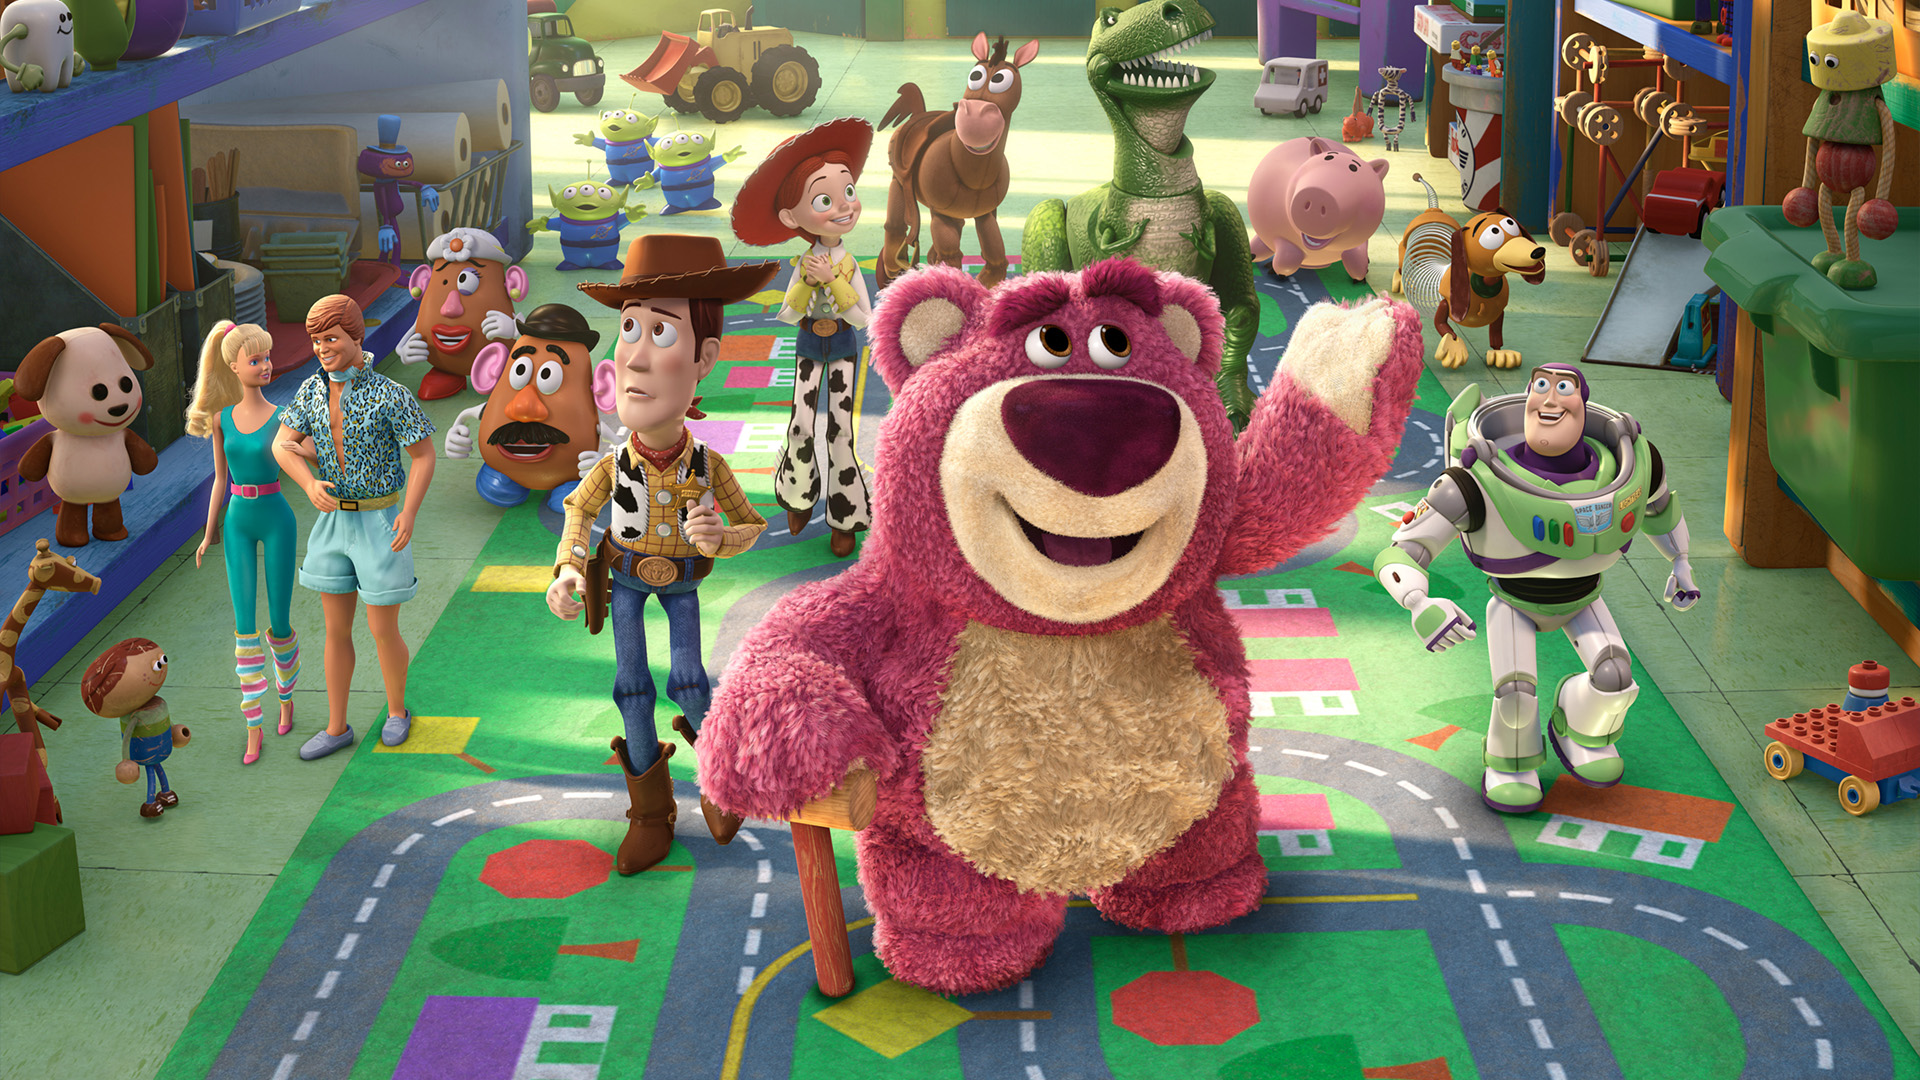 toy story 3 wallpapers, pictures, images